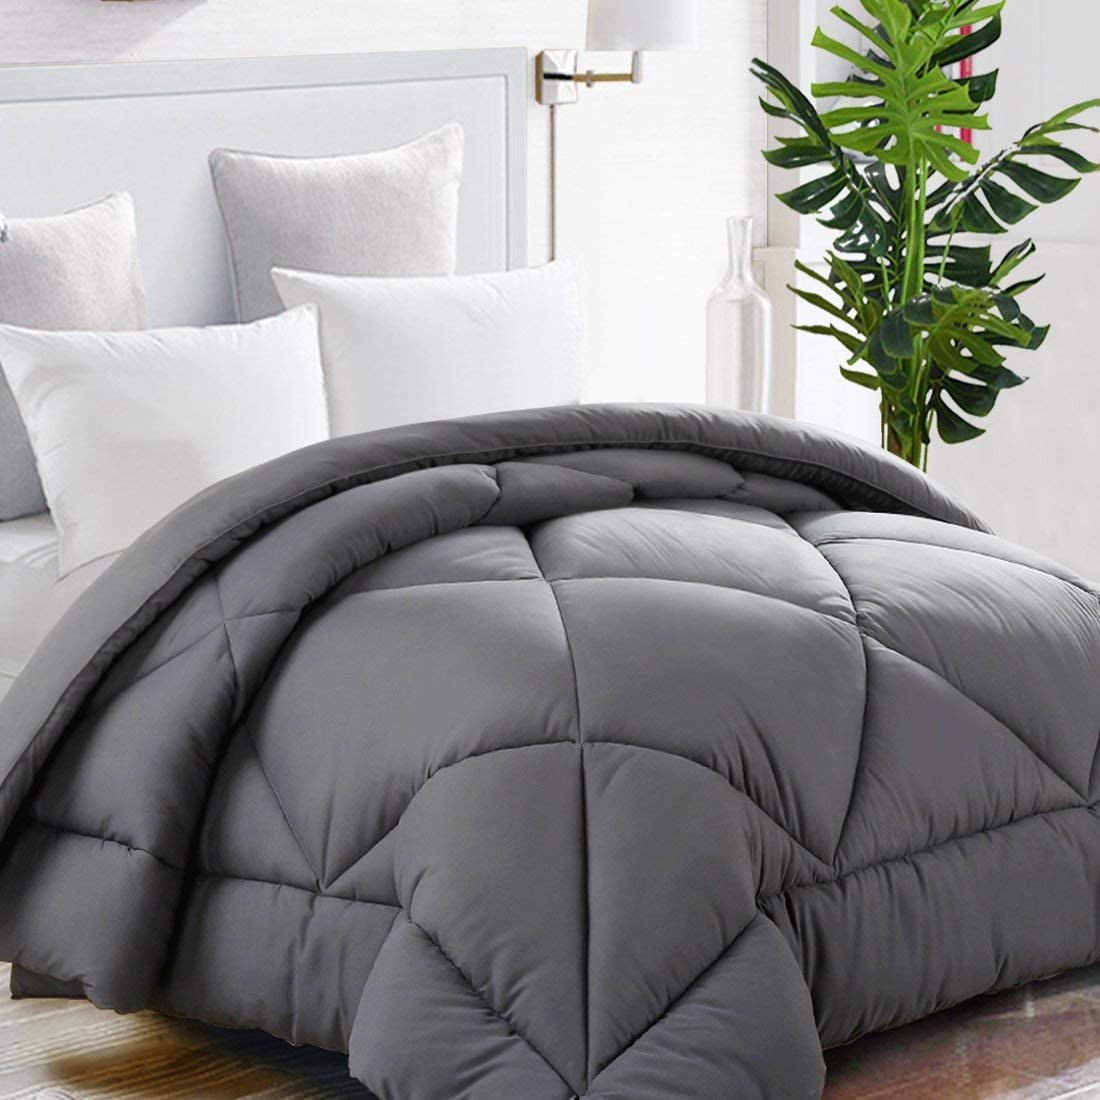 TEKAMON All Season Twin Comforter Soft Quilted Down Alternative Duvet Insert with Corner Tabs, Luxury Fluffy Reversible Summer Cool Hotel Collection,Charcoal Grey,64 x 88 inches